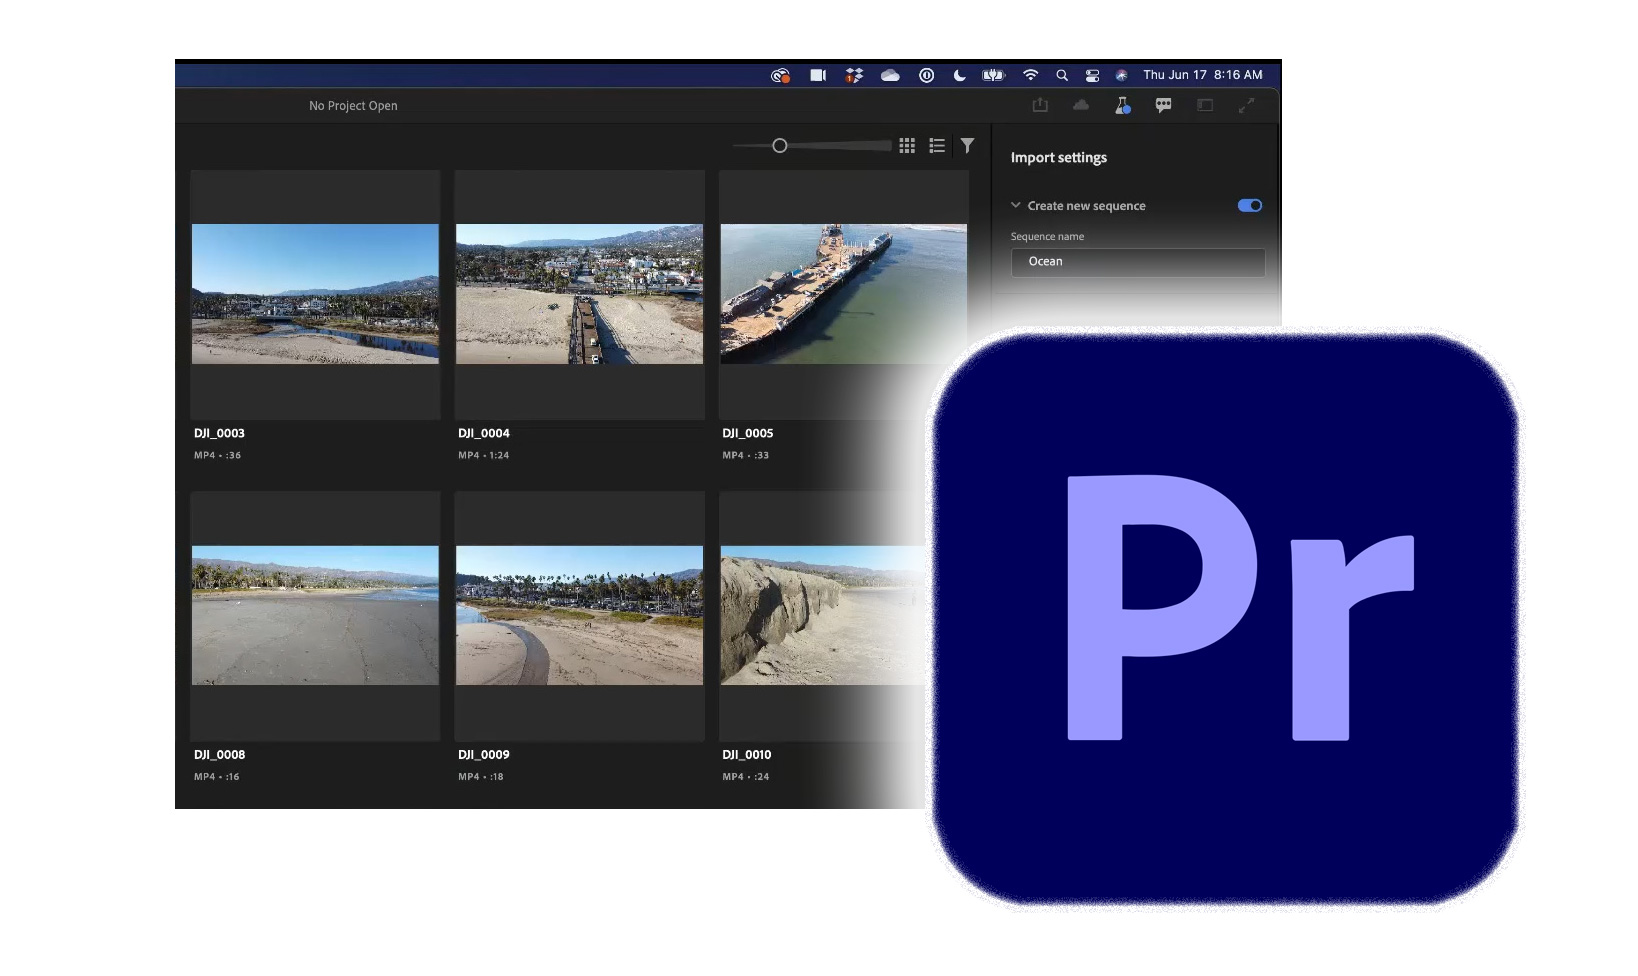 Adobe introduces new UI design for Premiere Pro